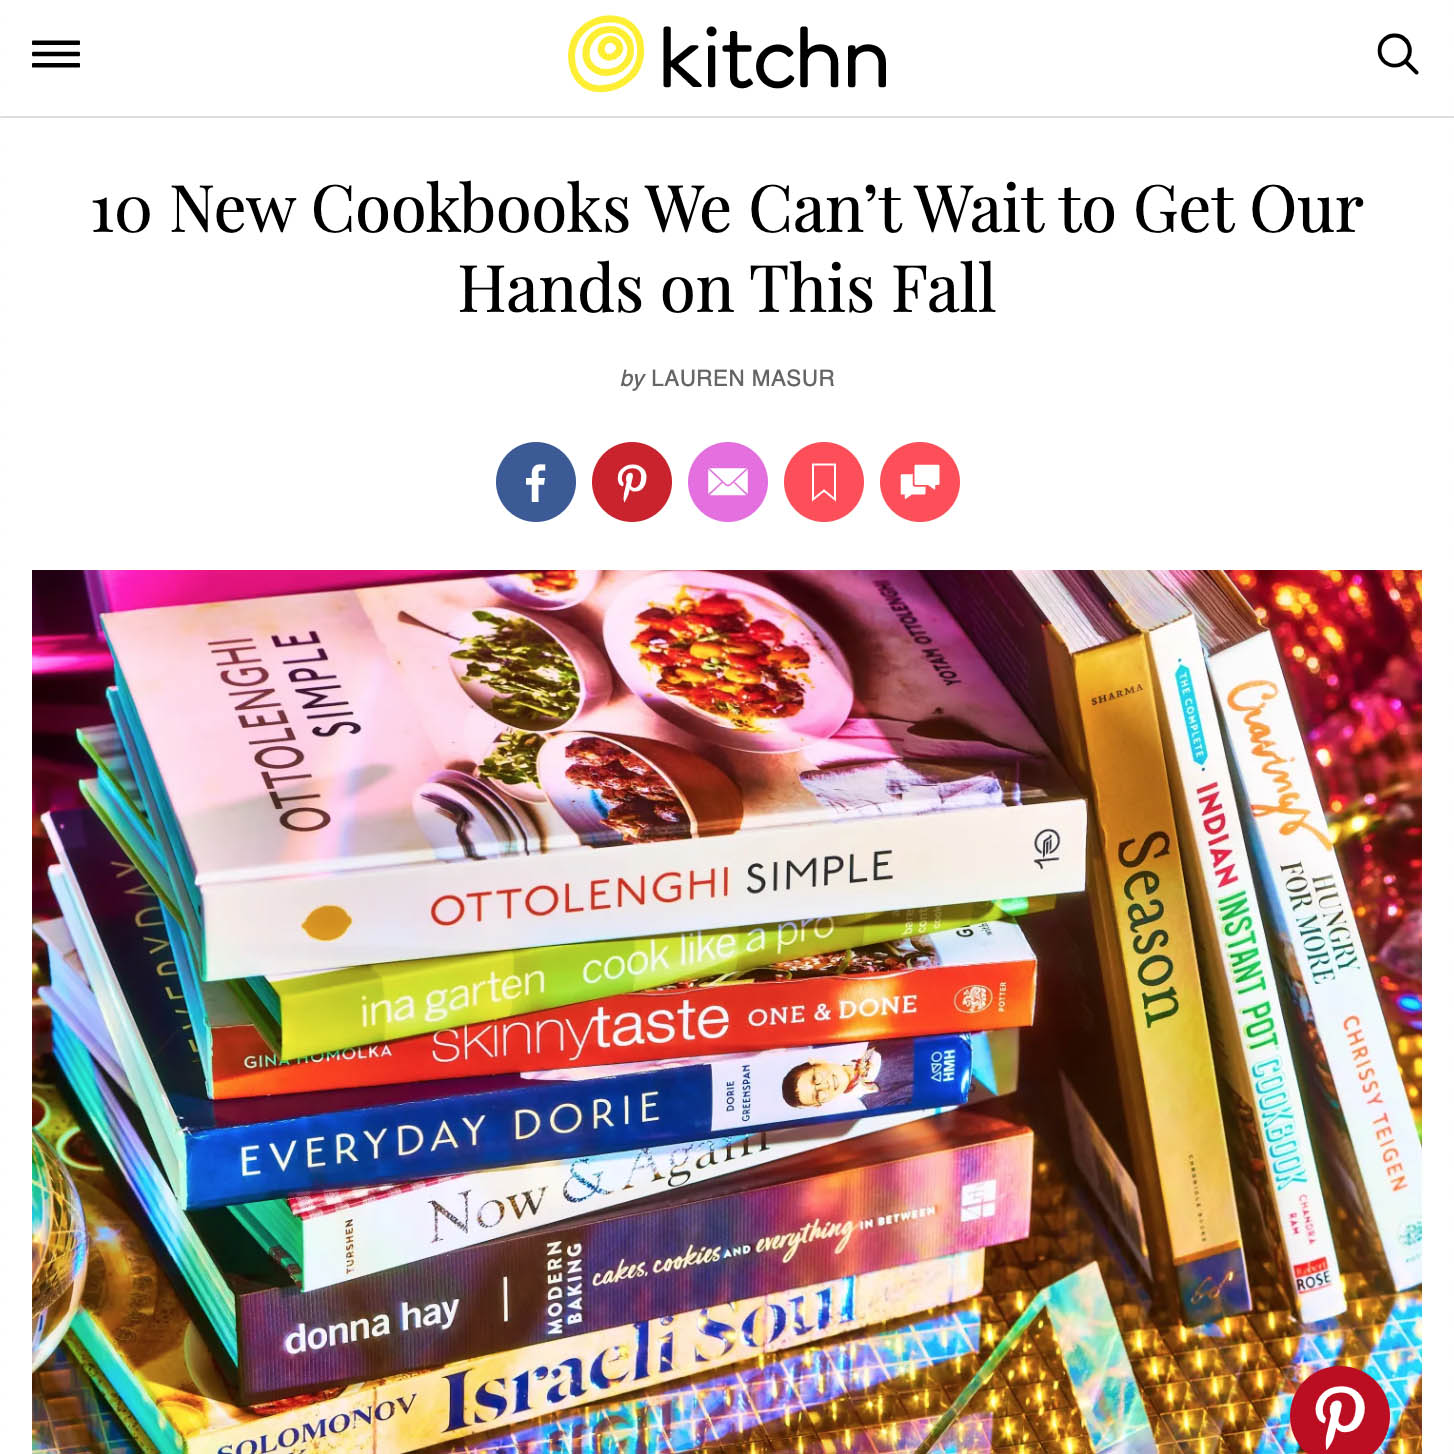 kitchn-10-new-cookbooks.jpg